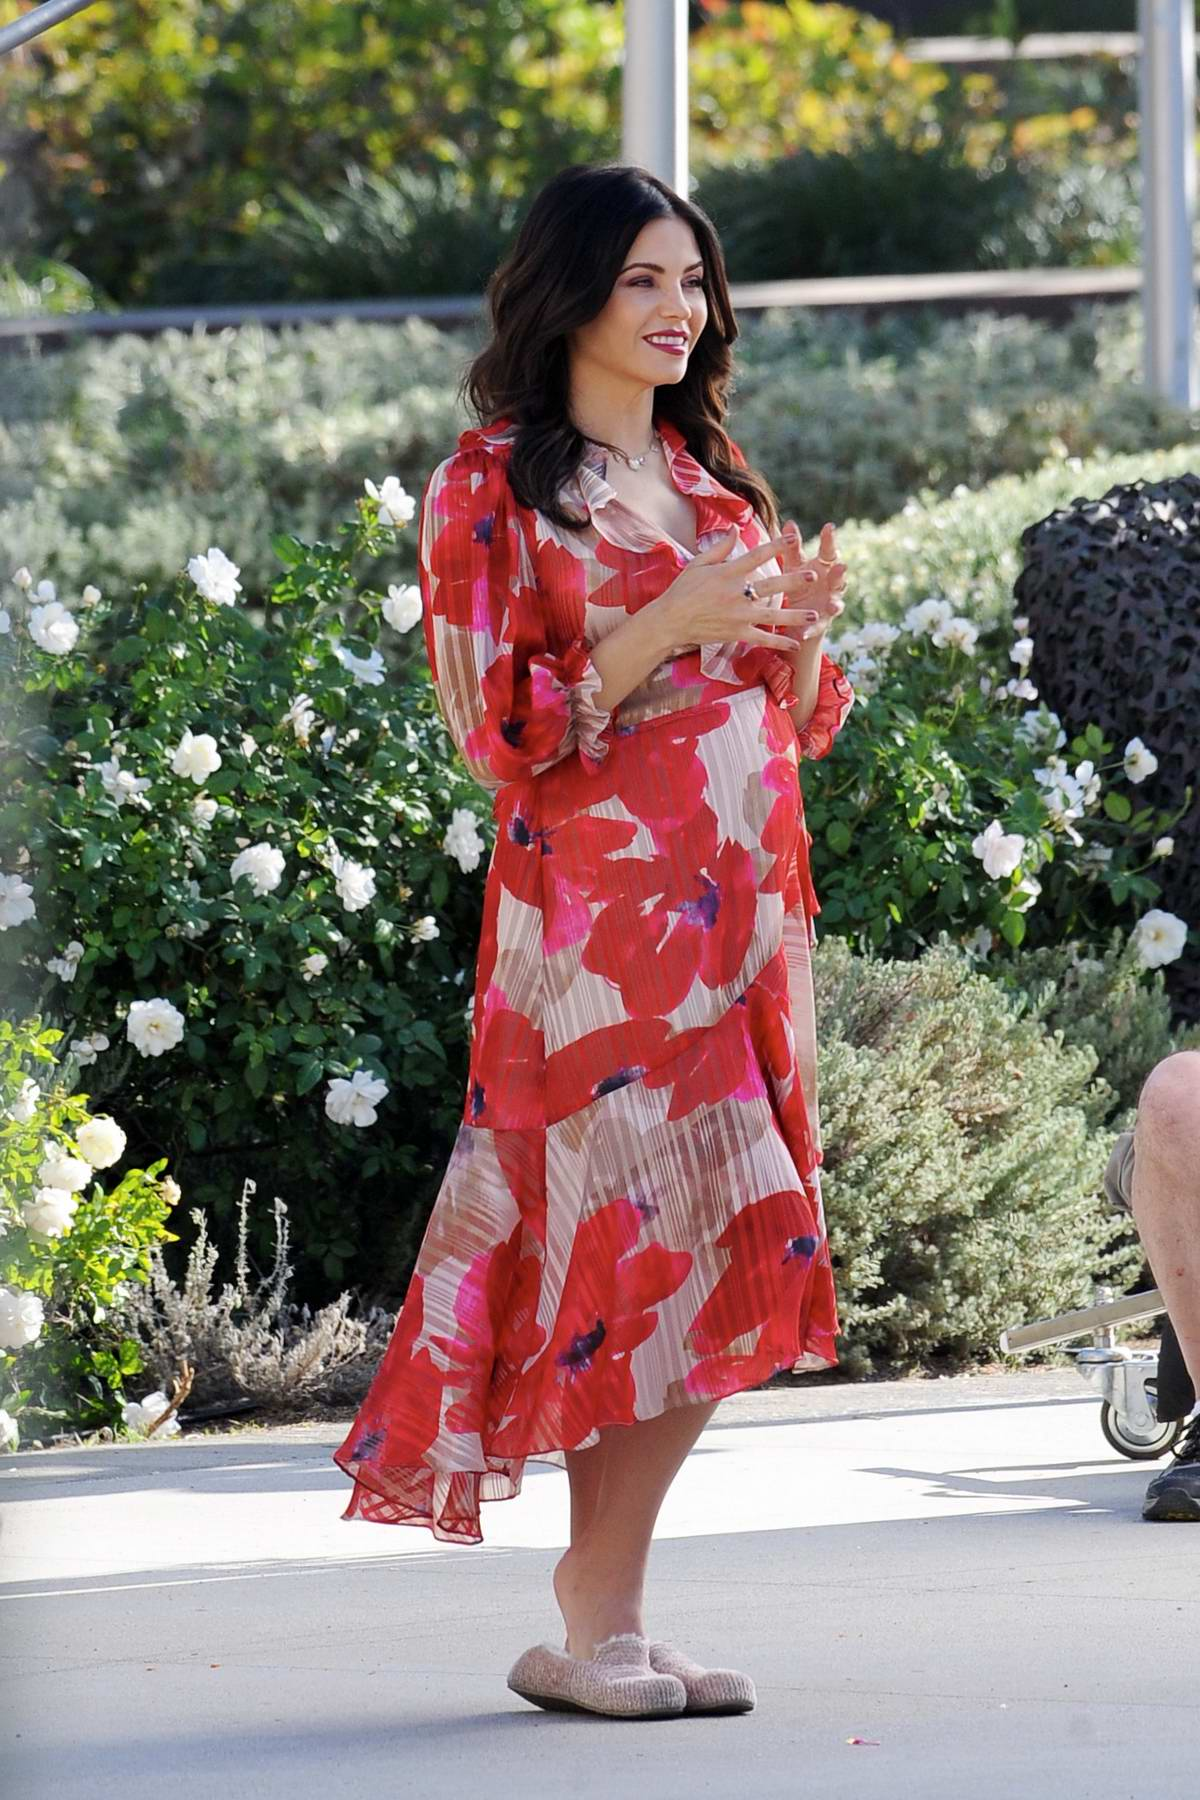 Jenna Dewan looks lovely in a red floral print dress while on the set of 'Flirty Dancing' in Los Angeles